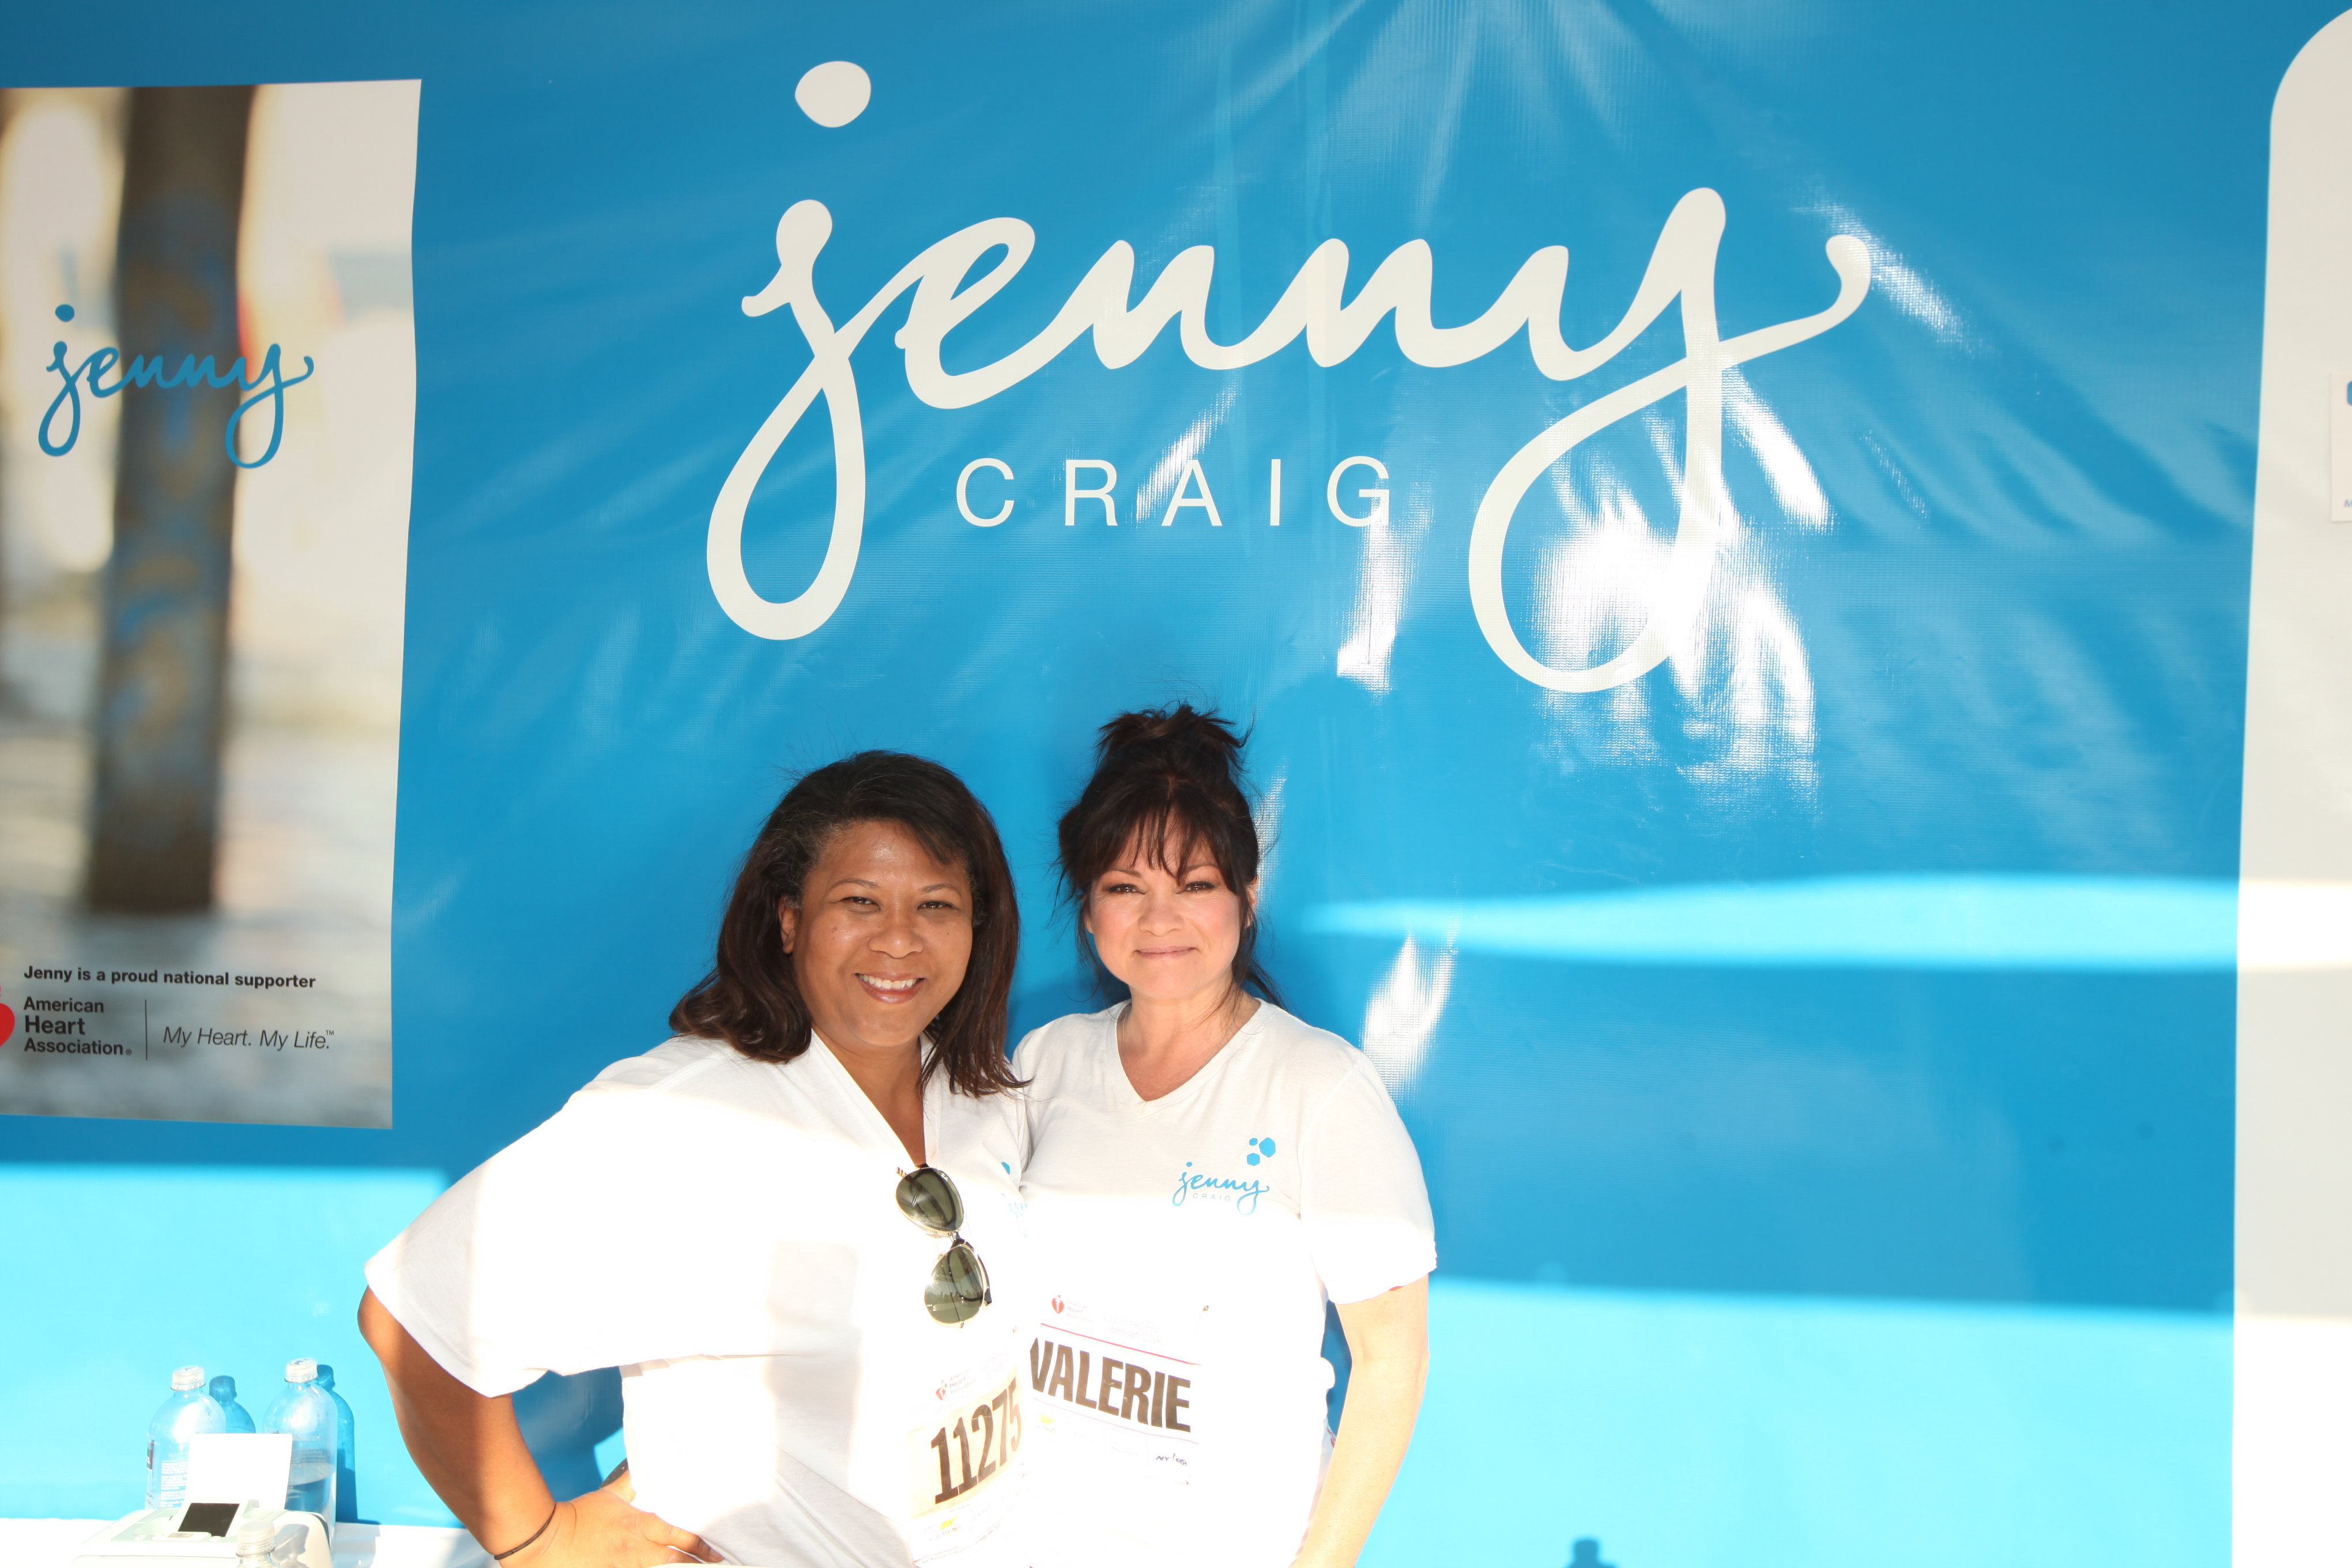 weight watchers and jenny craig essay How i lost it: my hairdresser told me that weight watchers was offering free enrollment and after i hit my goal weight, i was asked to be a jenny craig counselor.